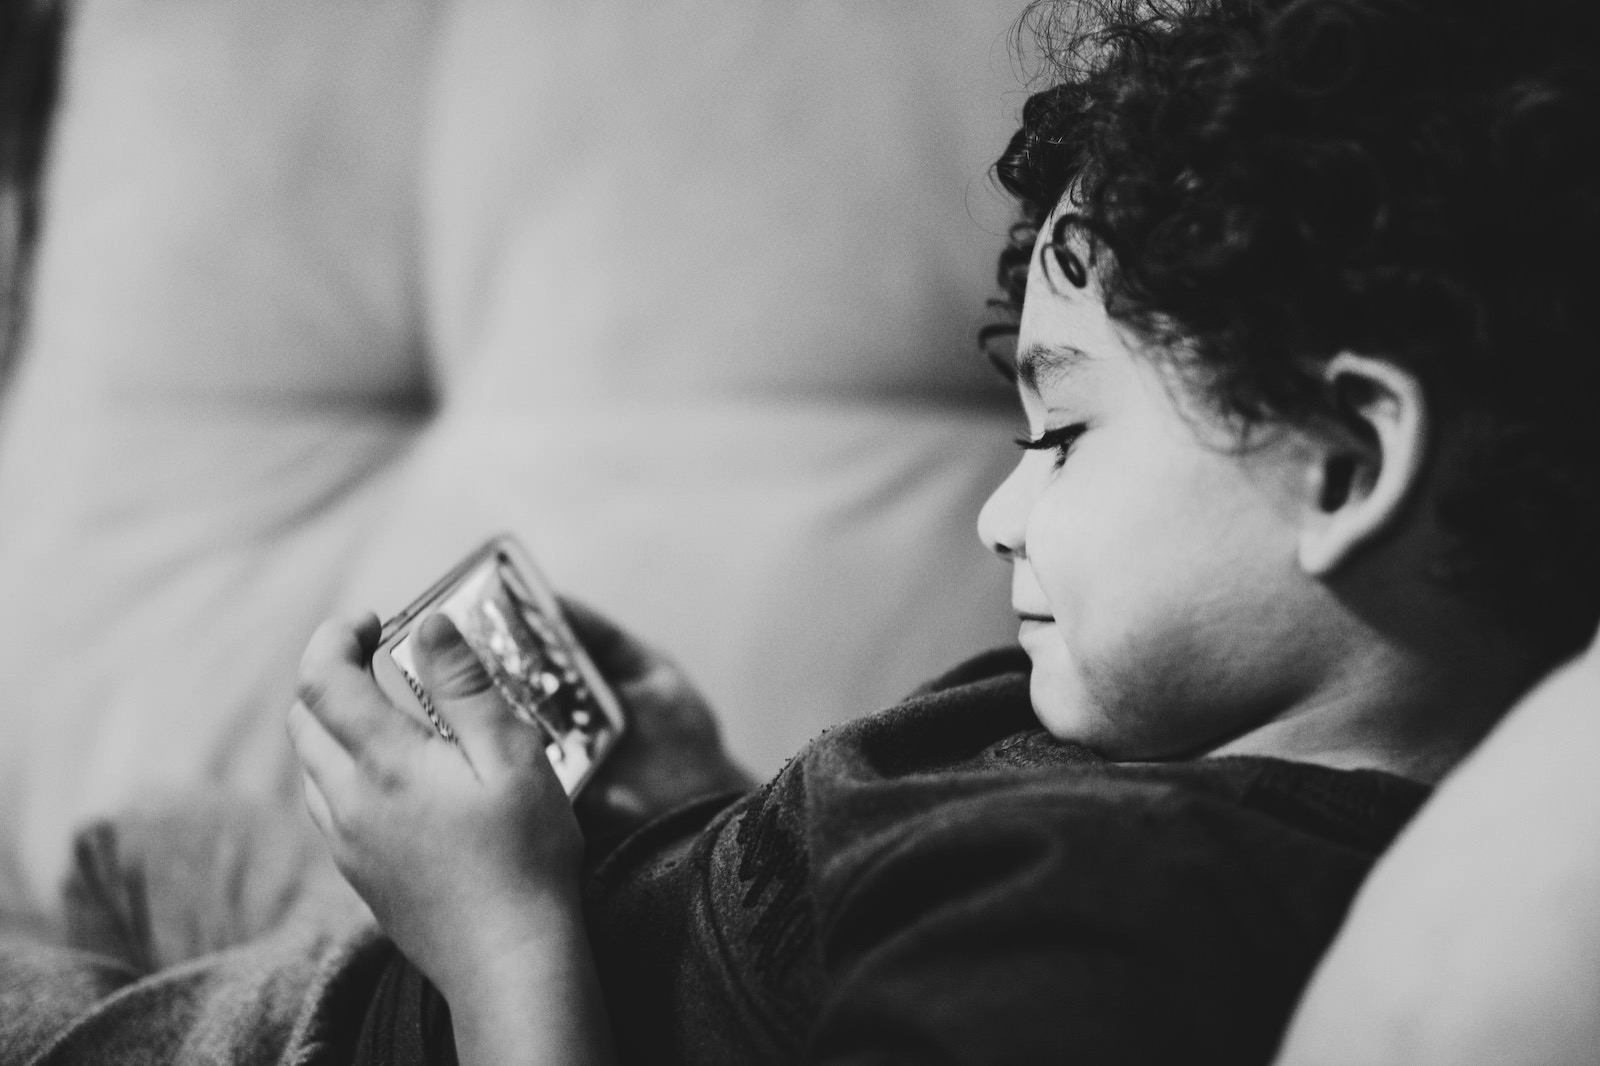 Diego passadori 641501 unsplash kids using phone